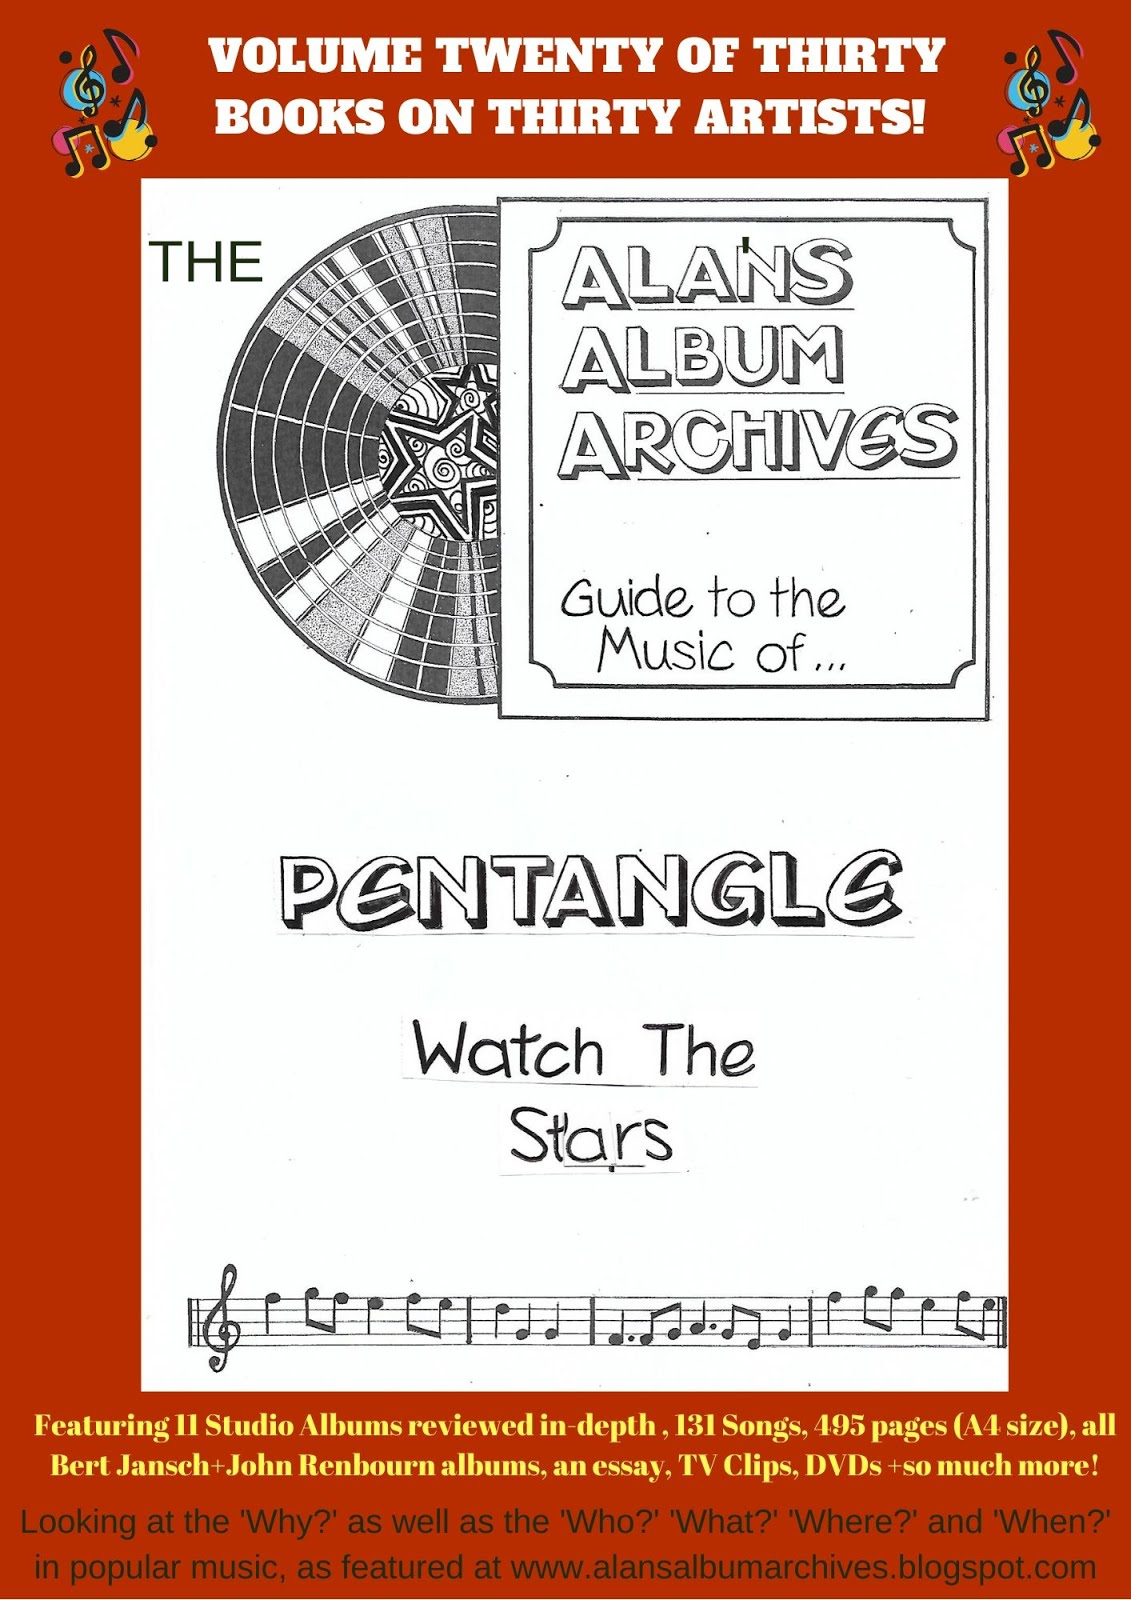 'Watch The Stars - The Alan's Album Archives Guide To The Music Of...Pentangle